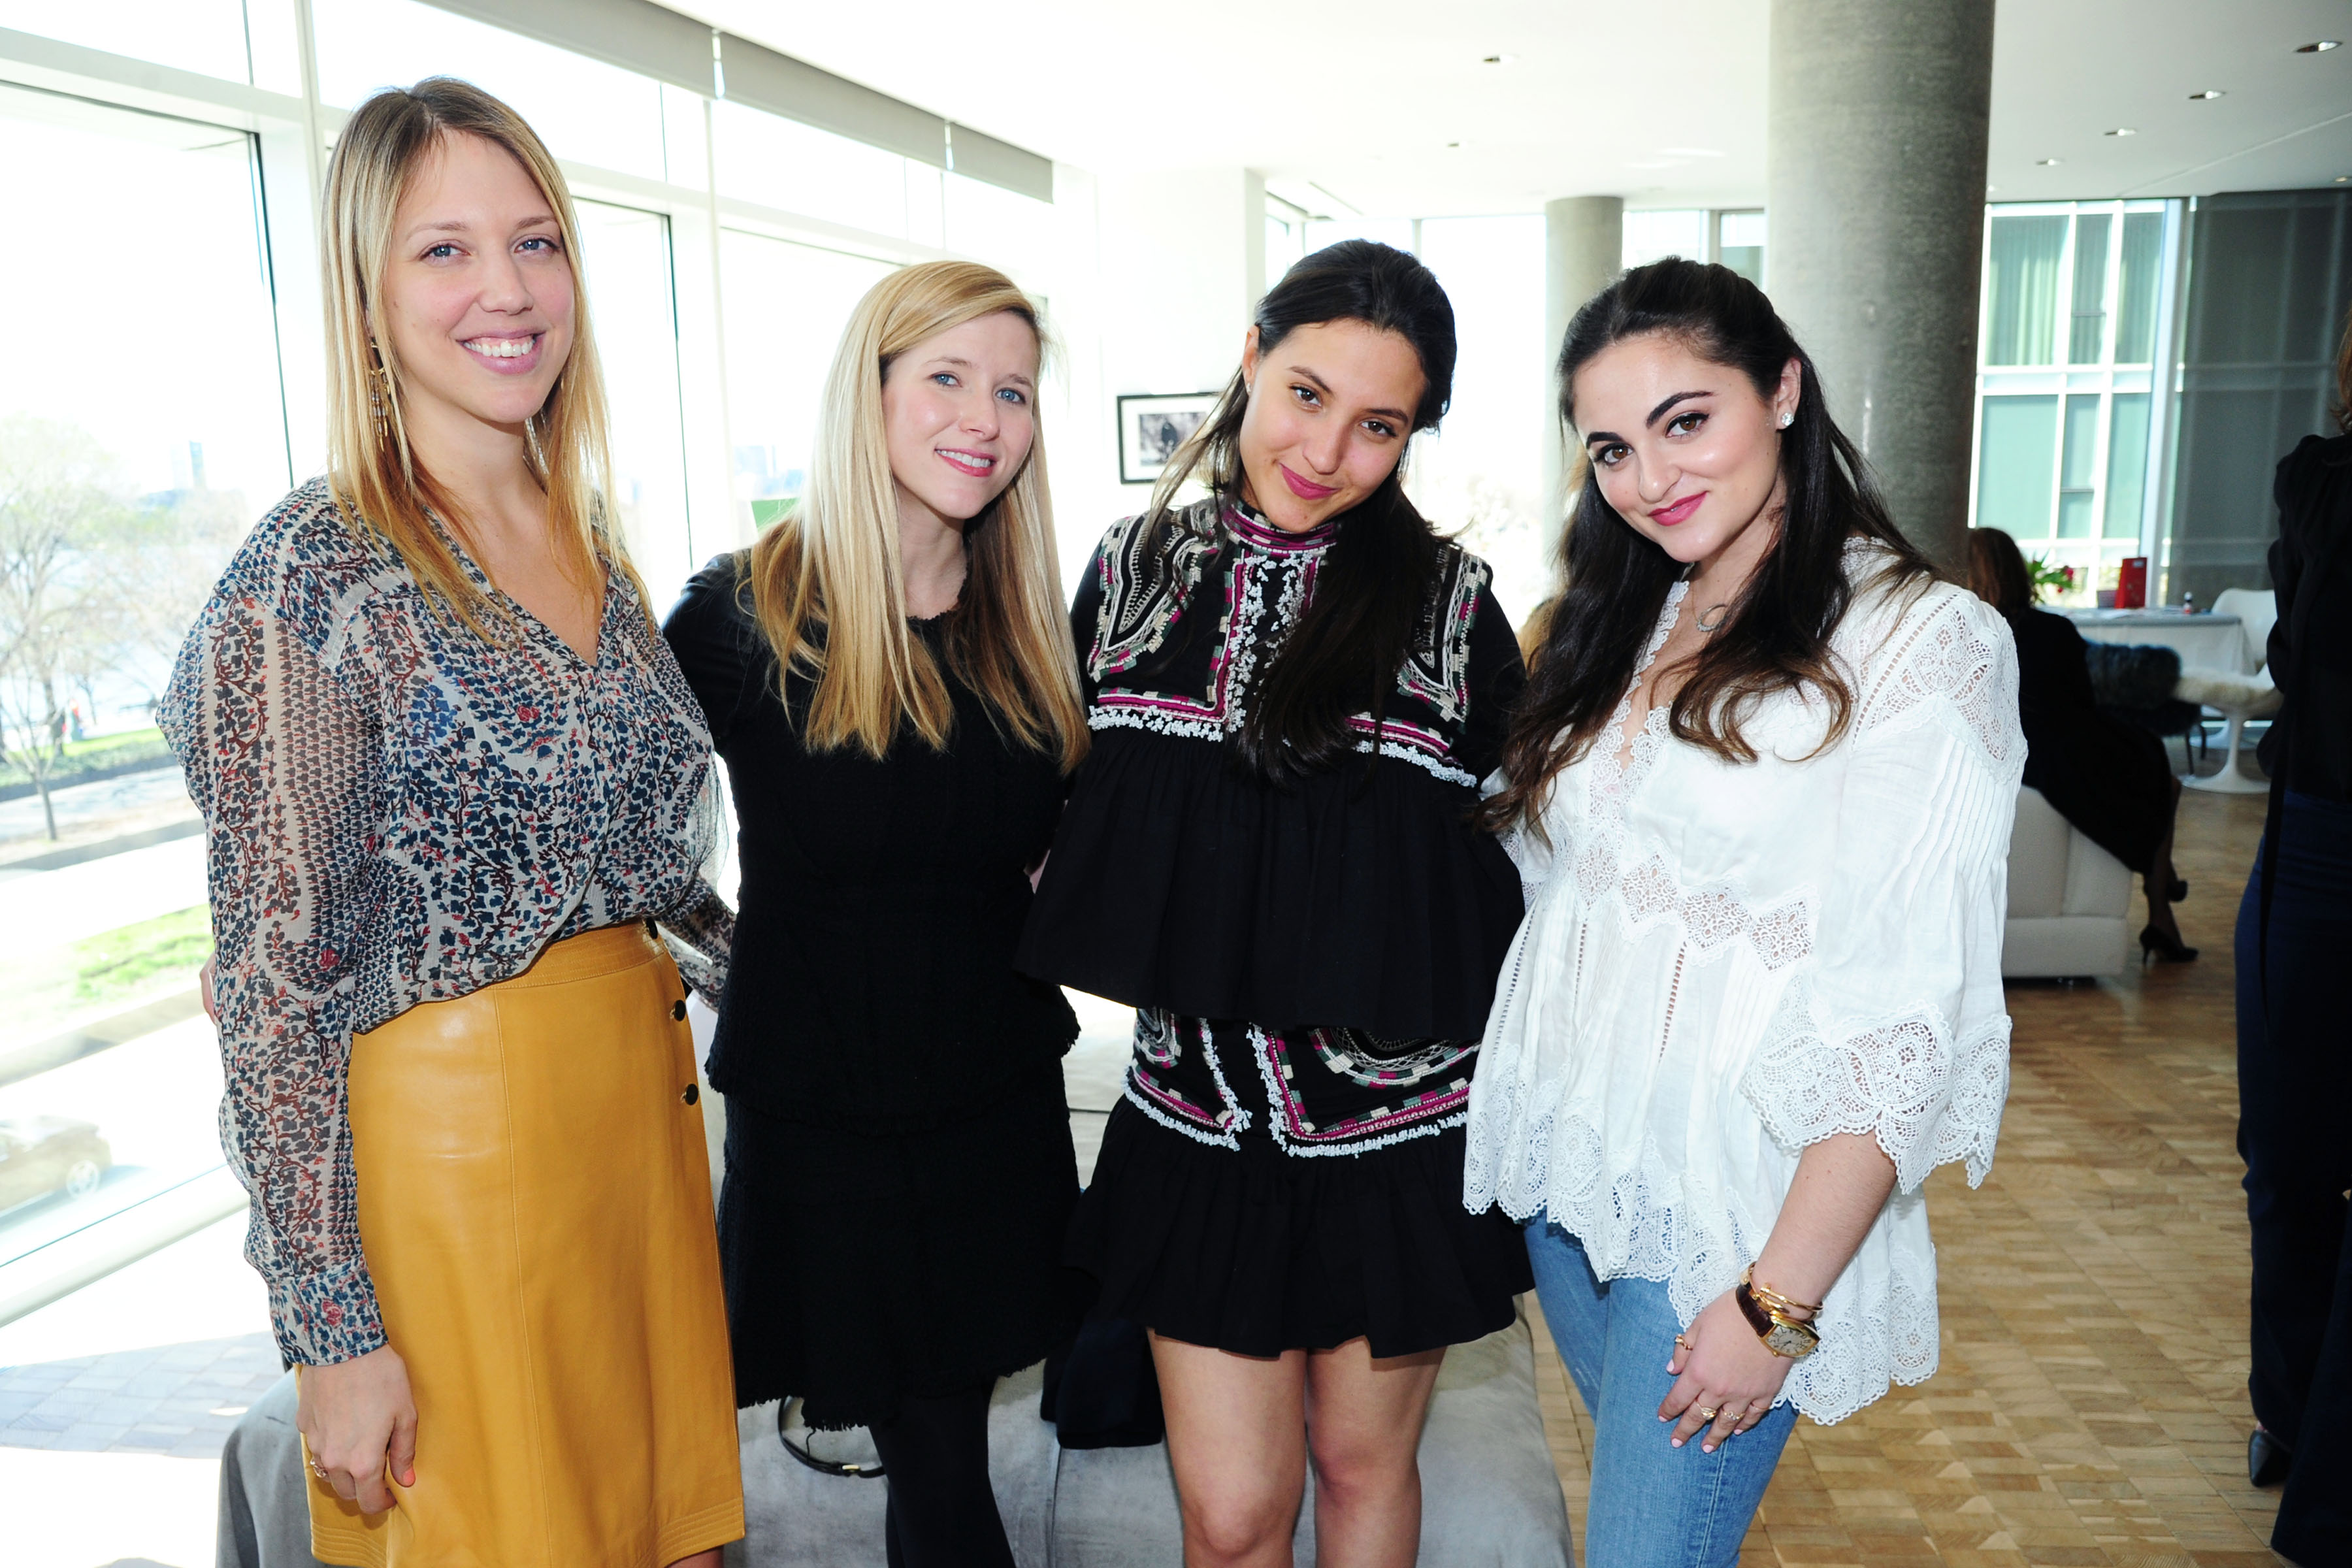 Karoline Katus, Paige Reddinger, Sophia Schrager, Emma Lasry== Joyful Heart Foundation x Me&Ro hosted by GenerationJOY== Private Residence, NYC== April 10, 2016== ©Patrick McMullan== Photo Ð Liam McMullan/PMC==